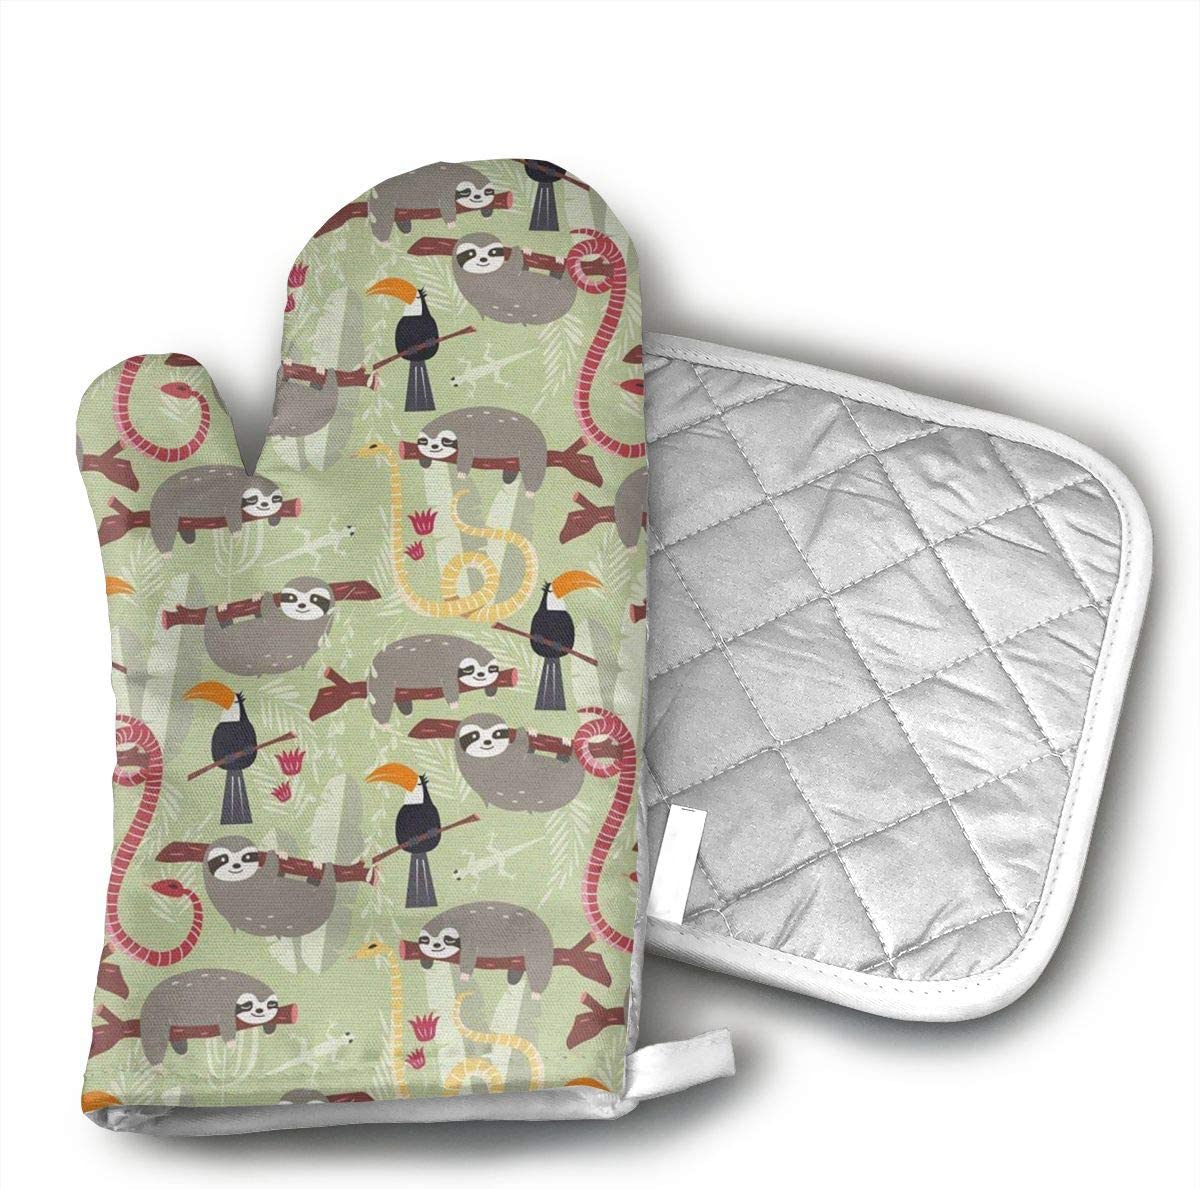 EROJfj South American Snake and Sloth Animals Oven Mitts and Potholders BBQ Gloves-Oven Mitts and Pot Holders Non-Slip Cooking Gloves for Cooking Baking Grilling